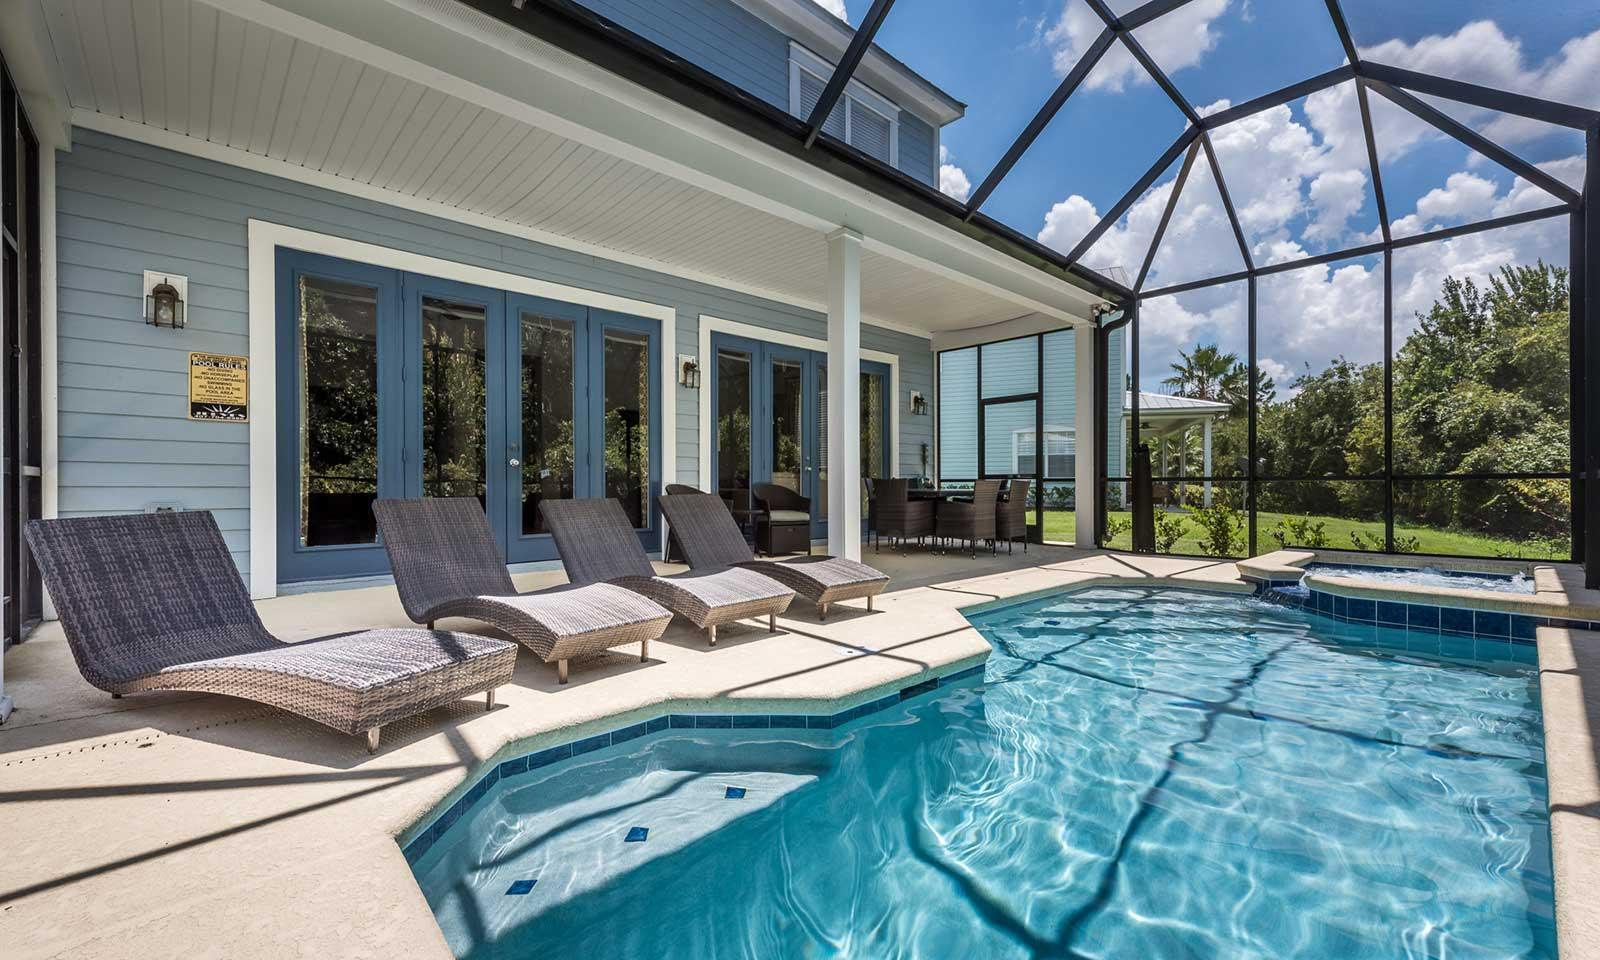 Property Image 1 - Timeless Oasis with Screened In Pool at Reunion